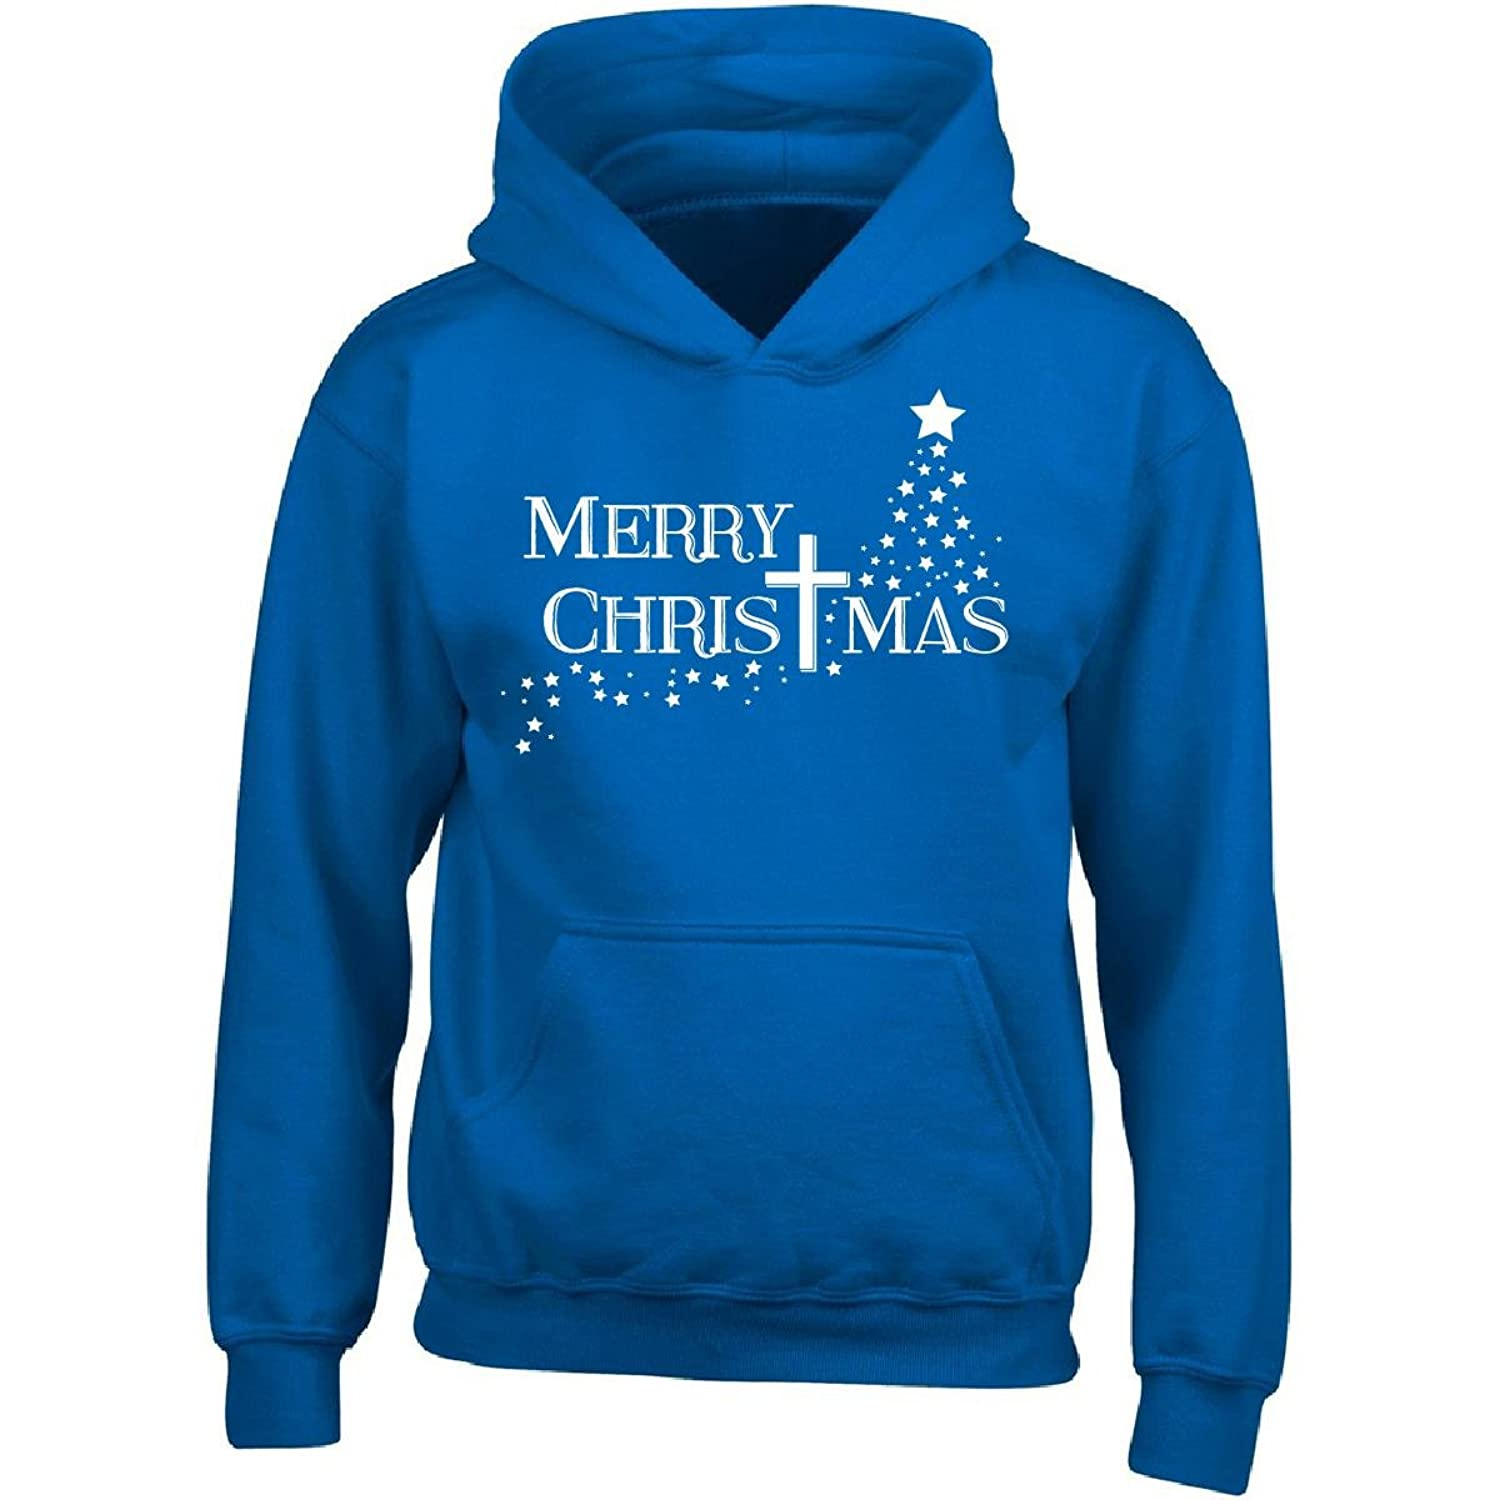 Nice Christian Christmas Gifts Merry Cross Design Ttb1 - Adult Hoodie for sale